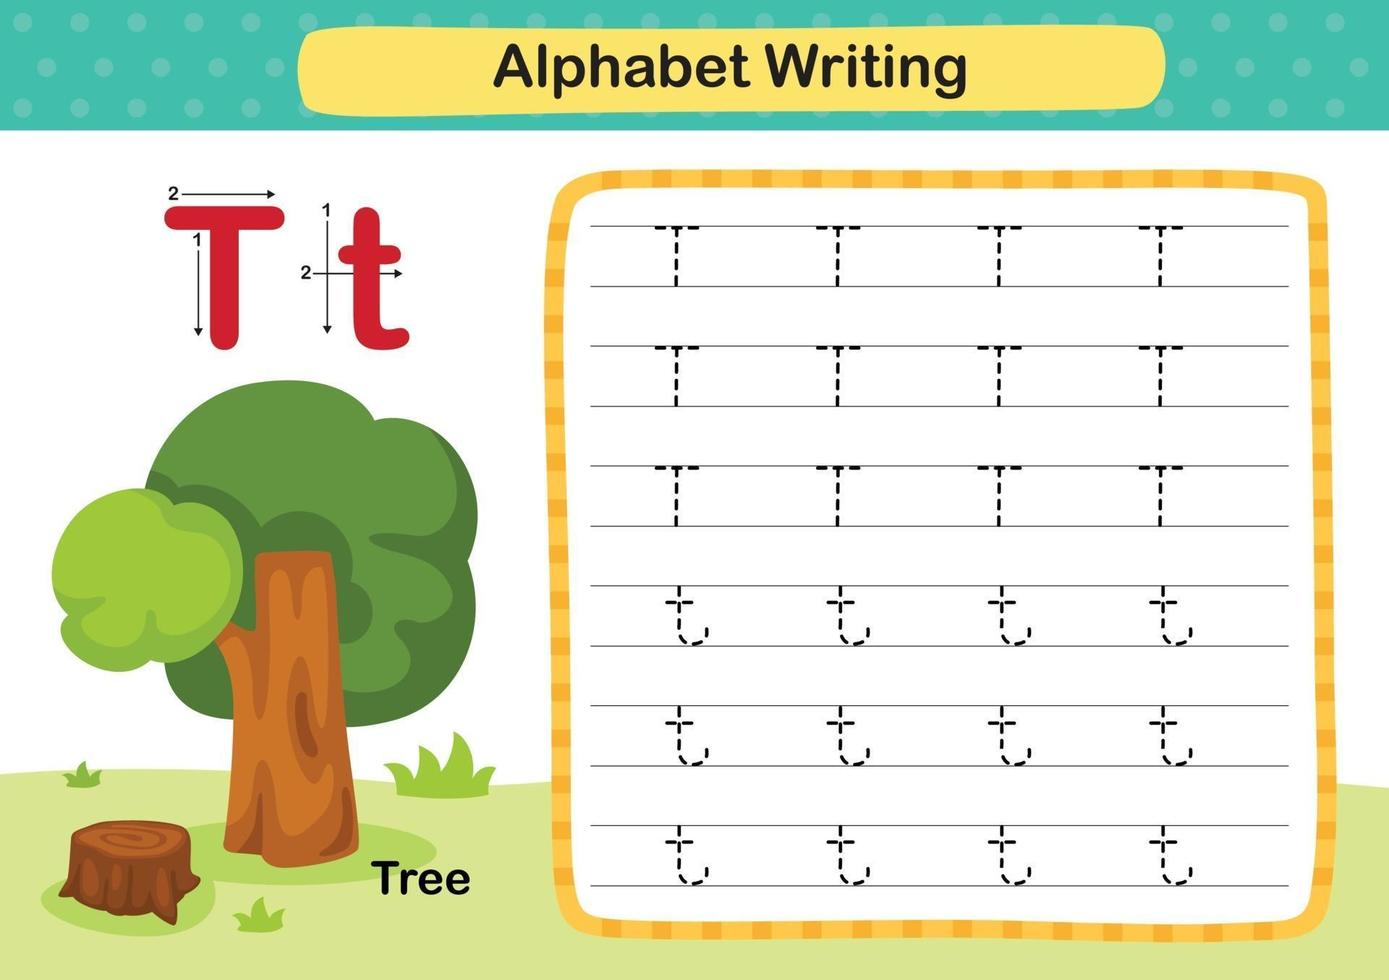 Alphabet Letter T-Tree exercise with cartoon vocabulary illustration, vector